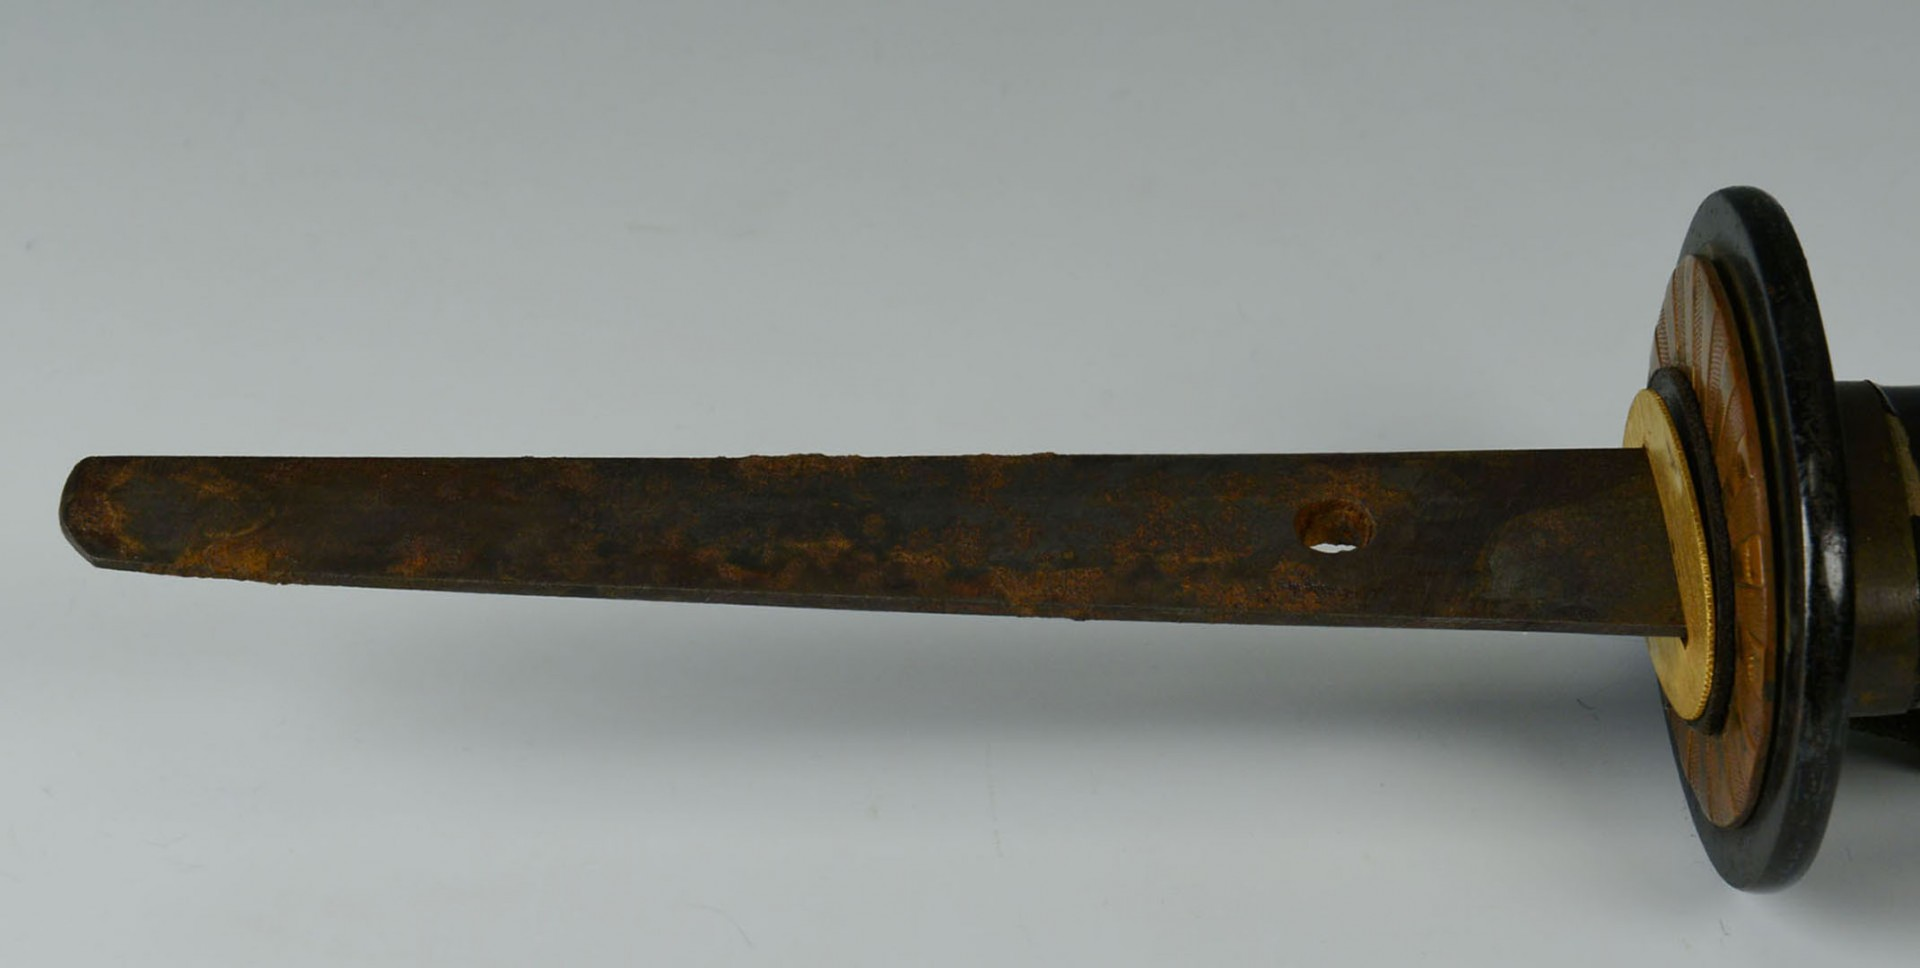 Lot 2872353: Japanese Naval Officer's Sword with Signed Tang